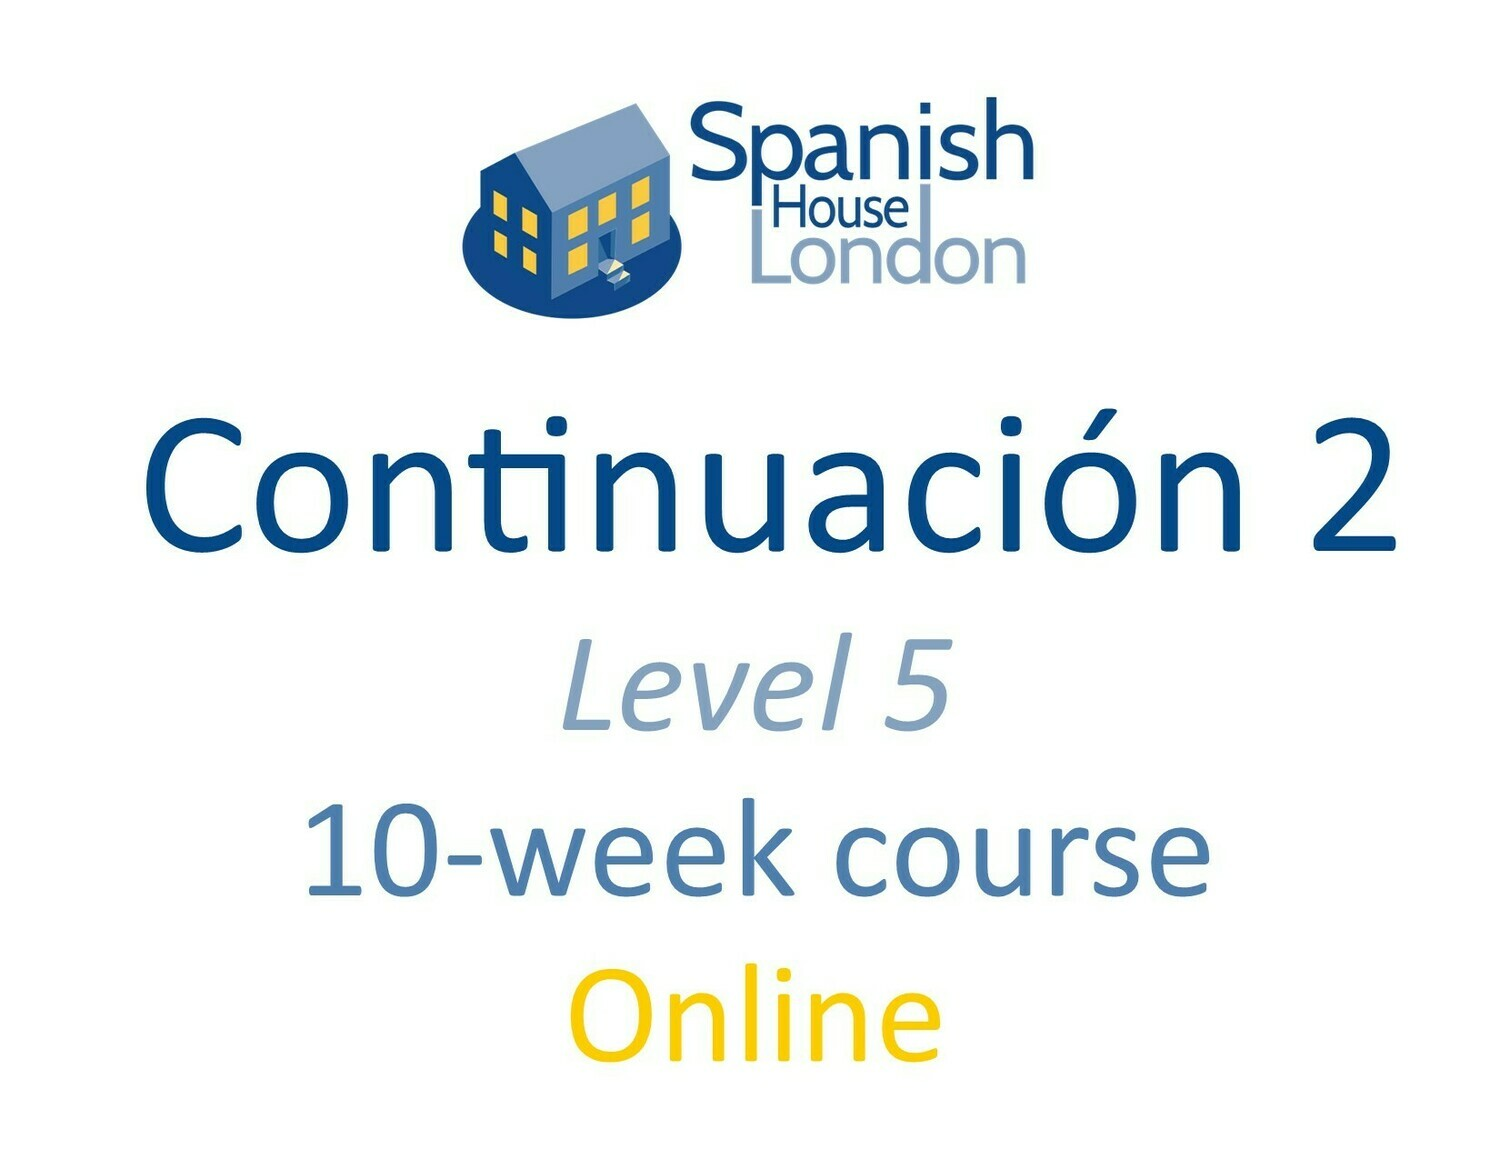 Continuacion 2 Course starting on 29th June at 7.30pm